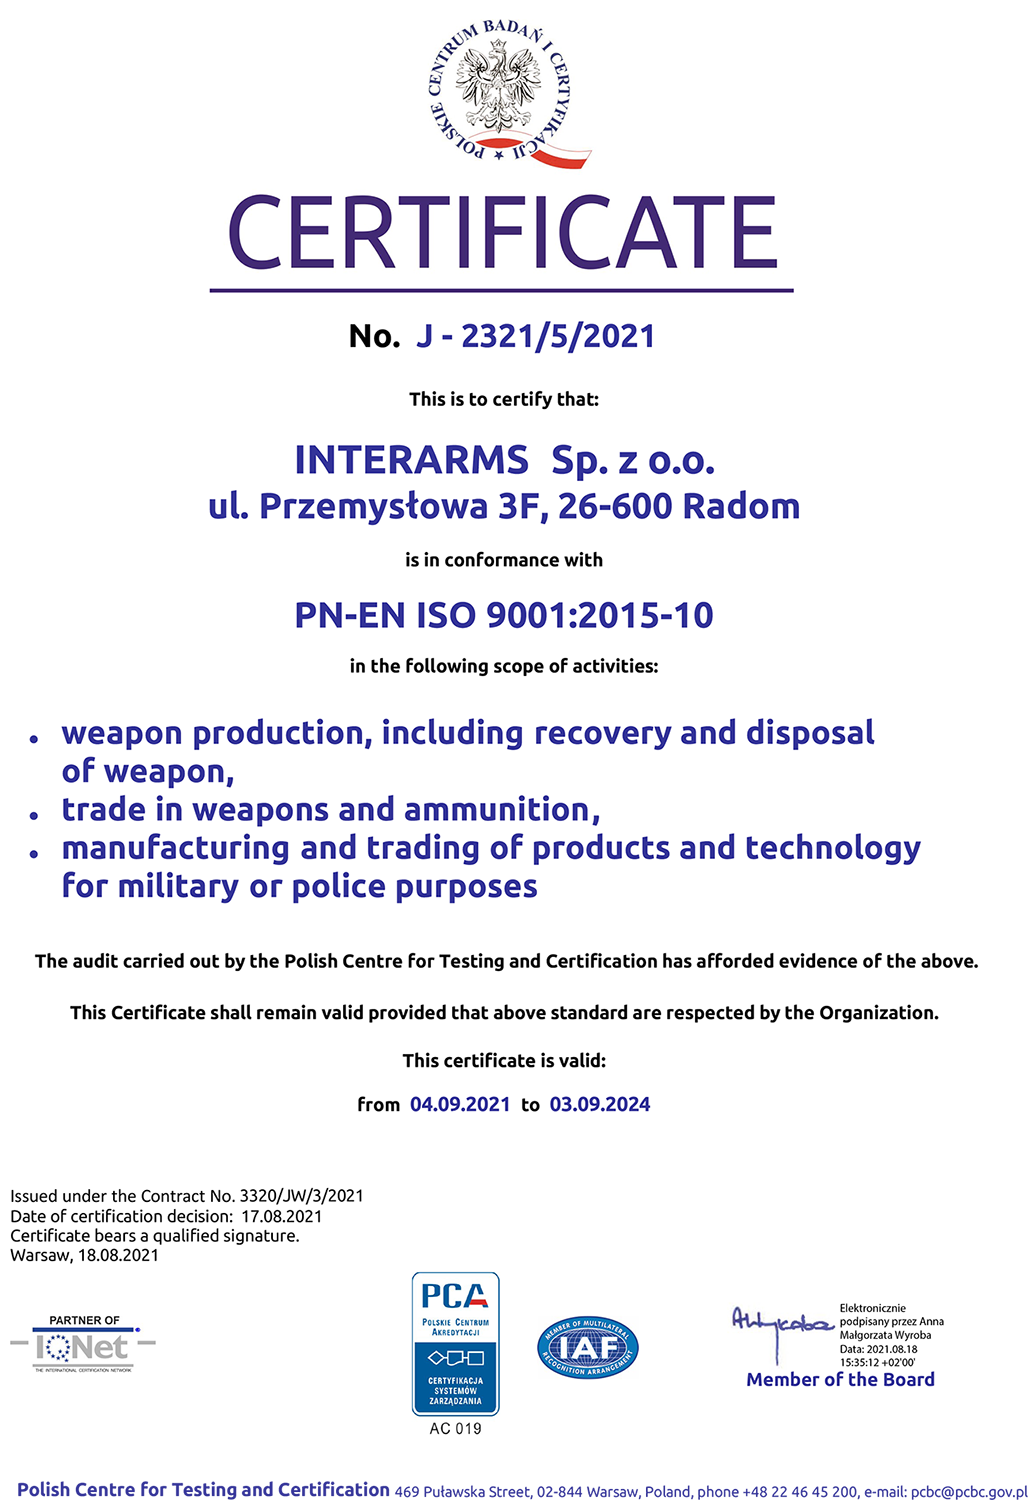 interarms_cert_18102018_3_659x903